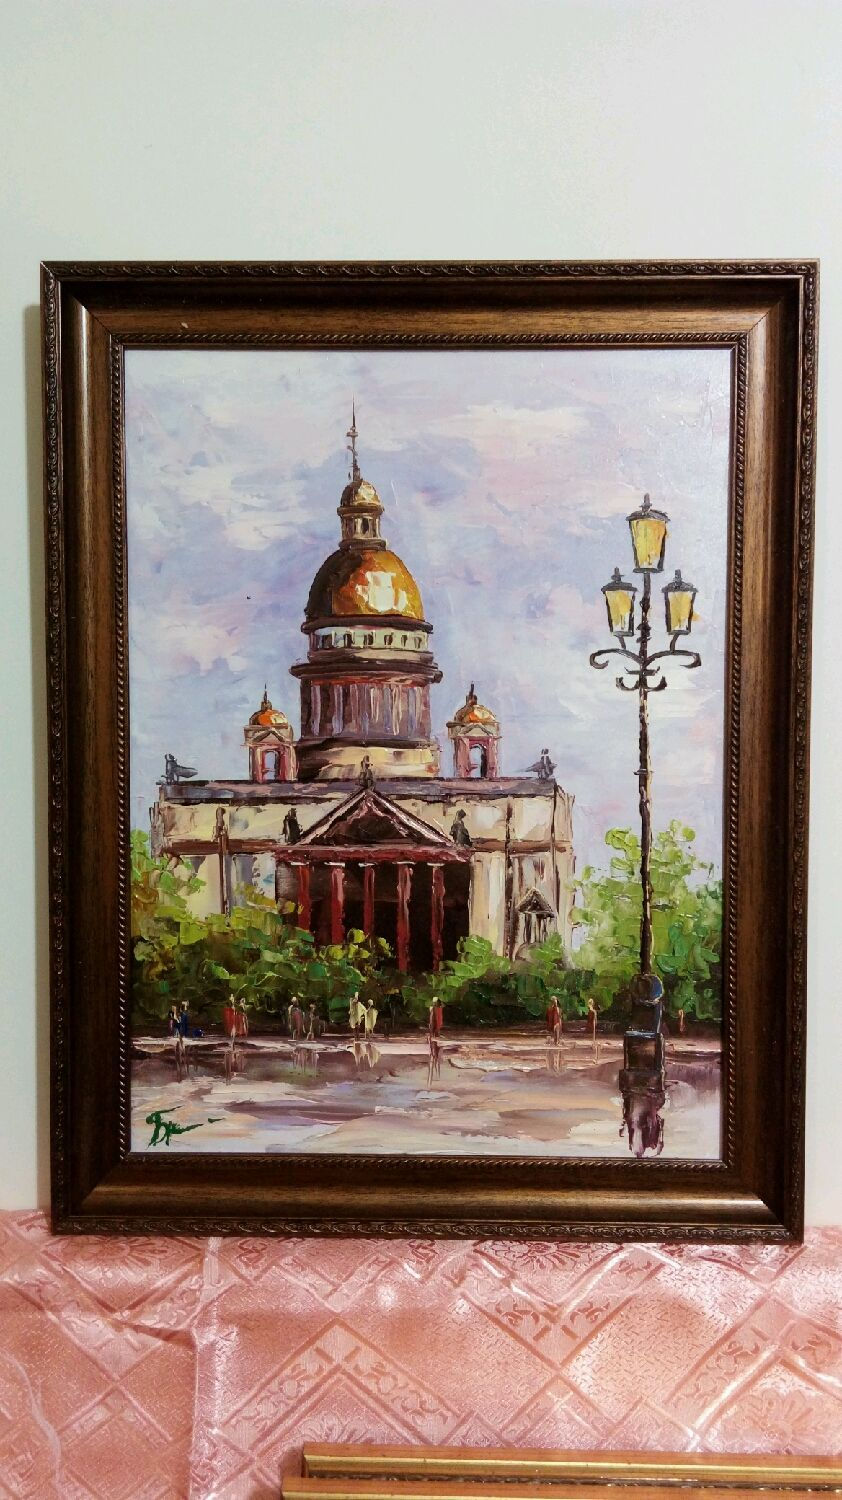 Oil painting framed size 47h37 cm, Pictures, Maloyaroslavets,  Фото №1